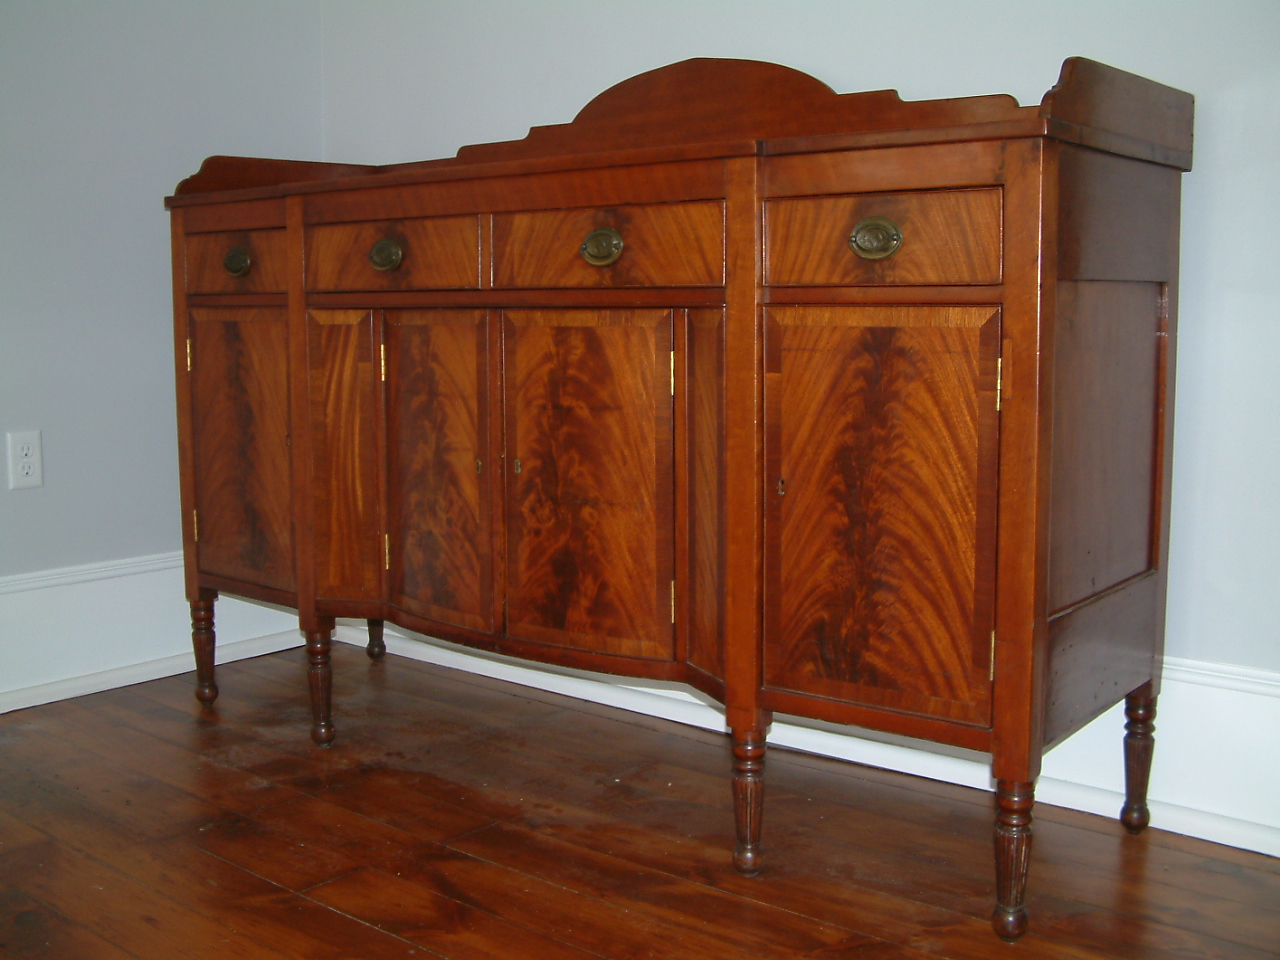 Charming 455   C1815 Cherry And Mahogany Sheraton Sideboard Found In The Lexington  Kentucky Area